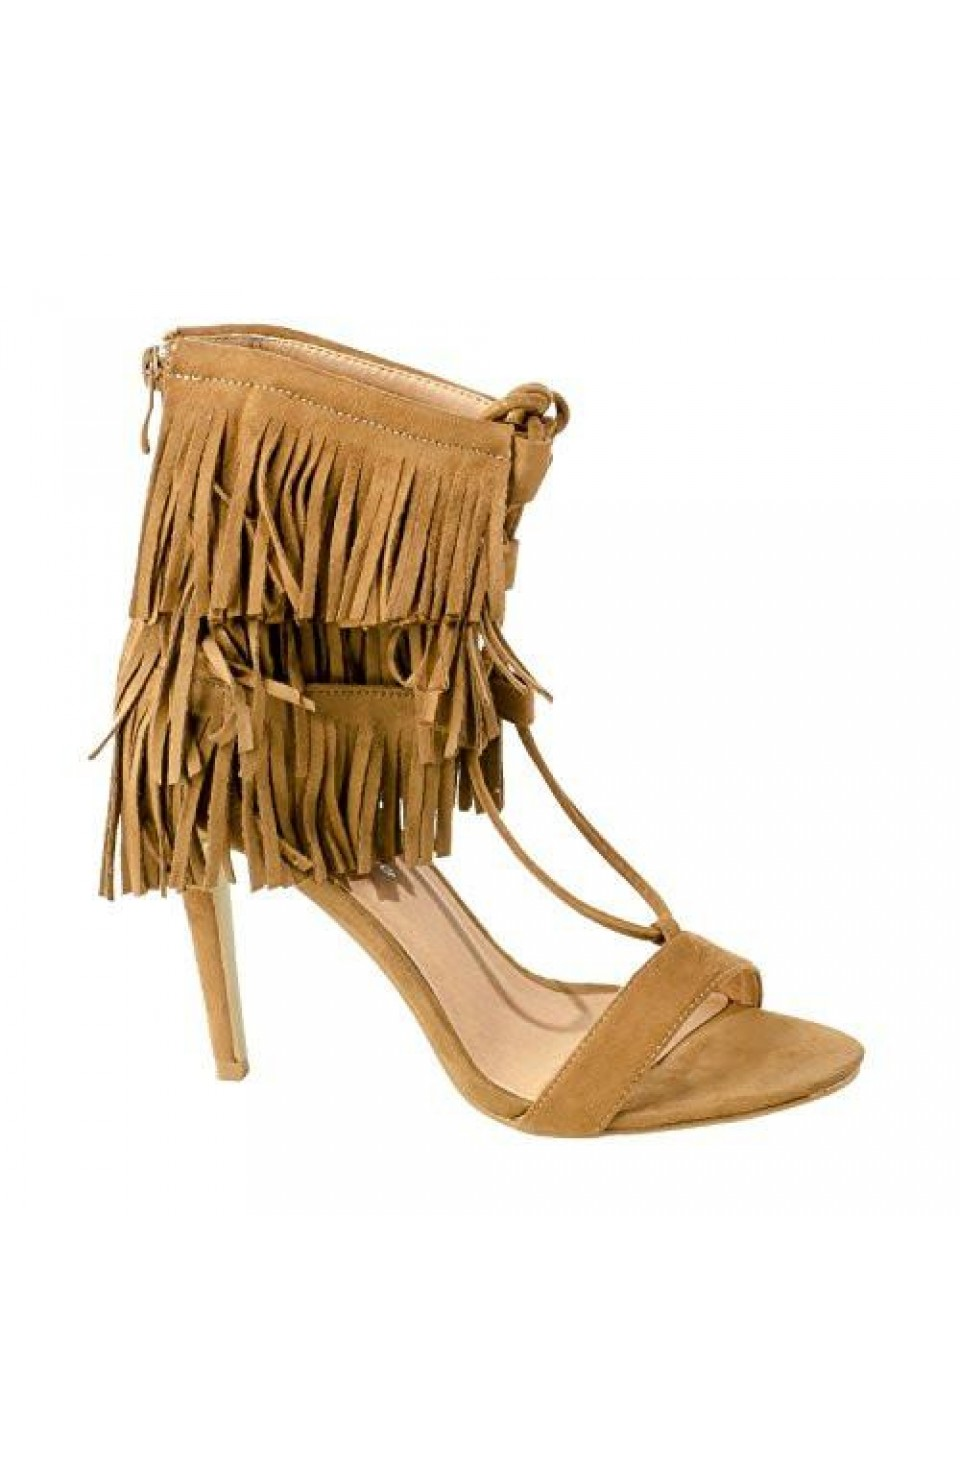 Women's Cognac Manmade Sophiiee 4.5-inch Sandal with Fringed Ankle Flair